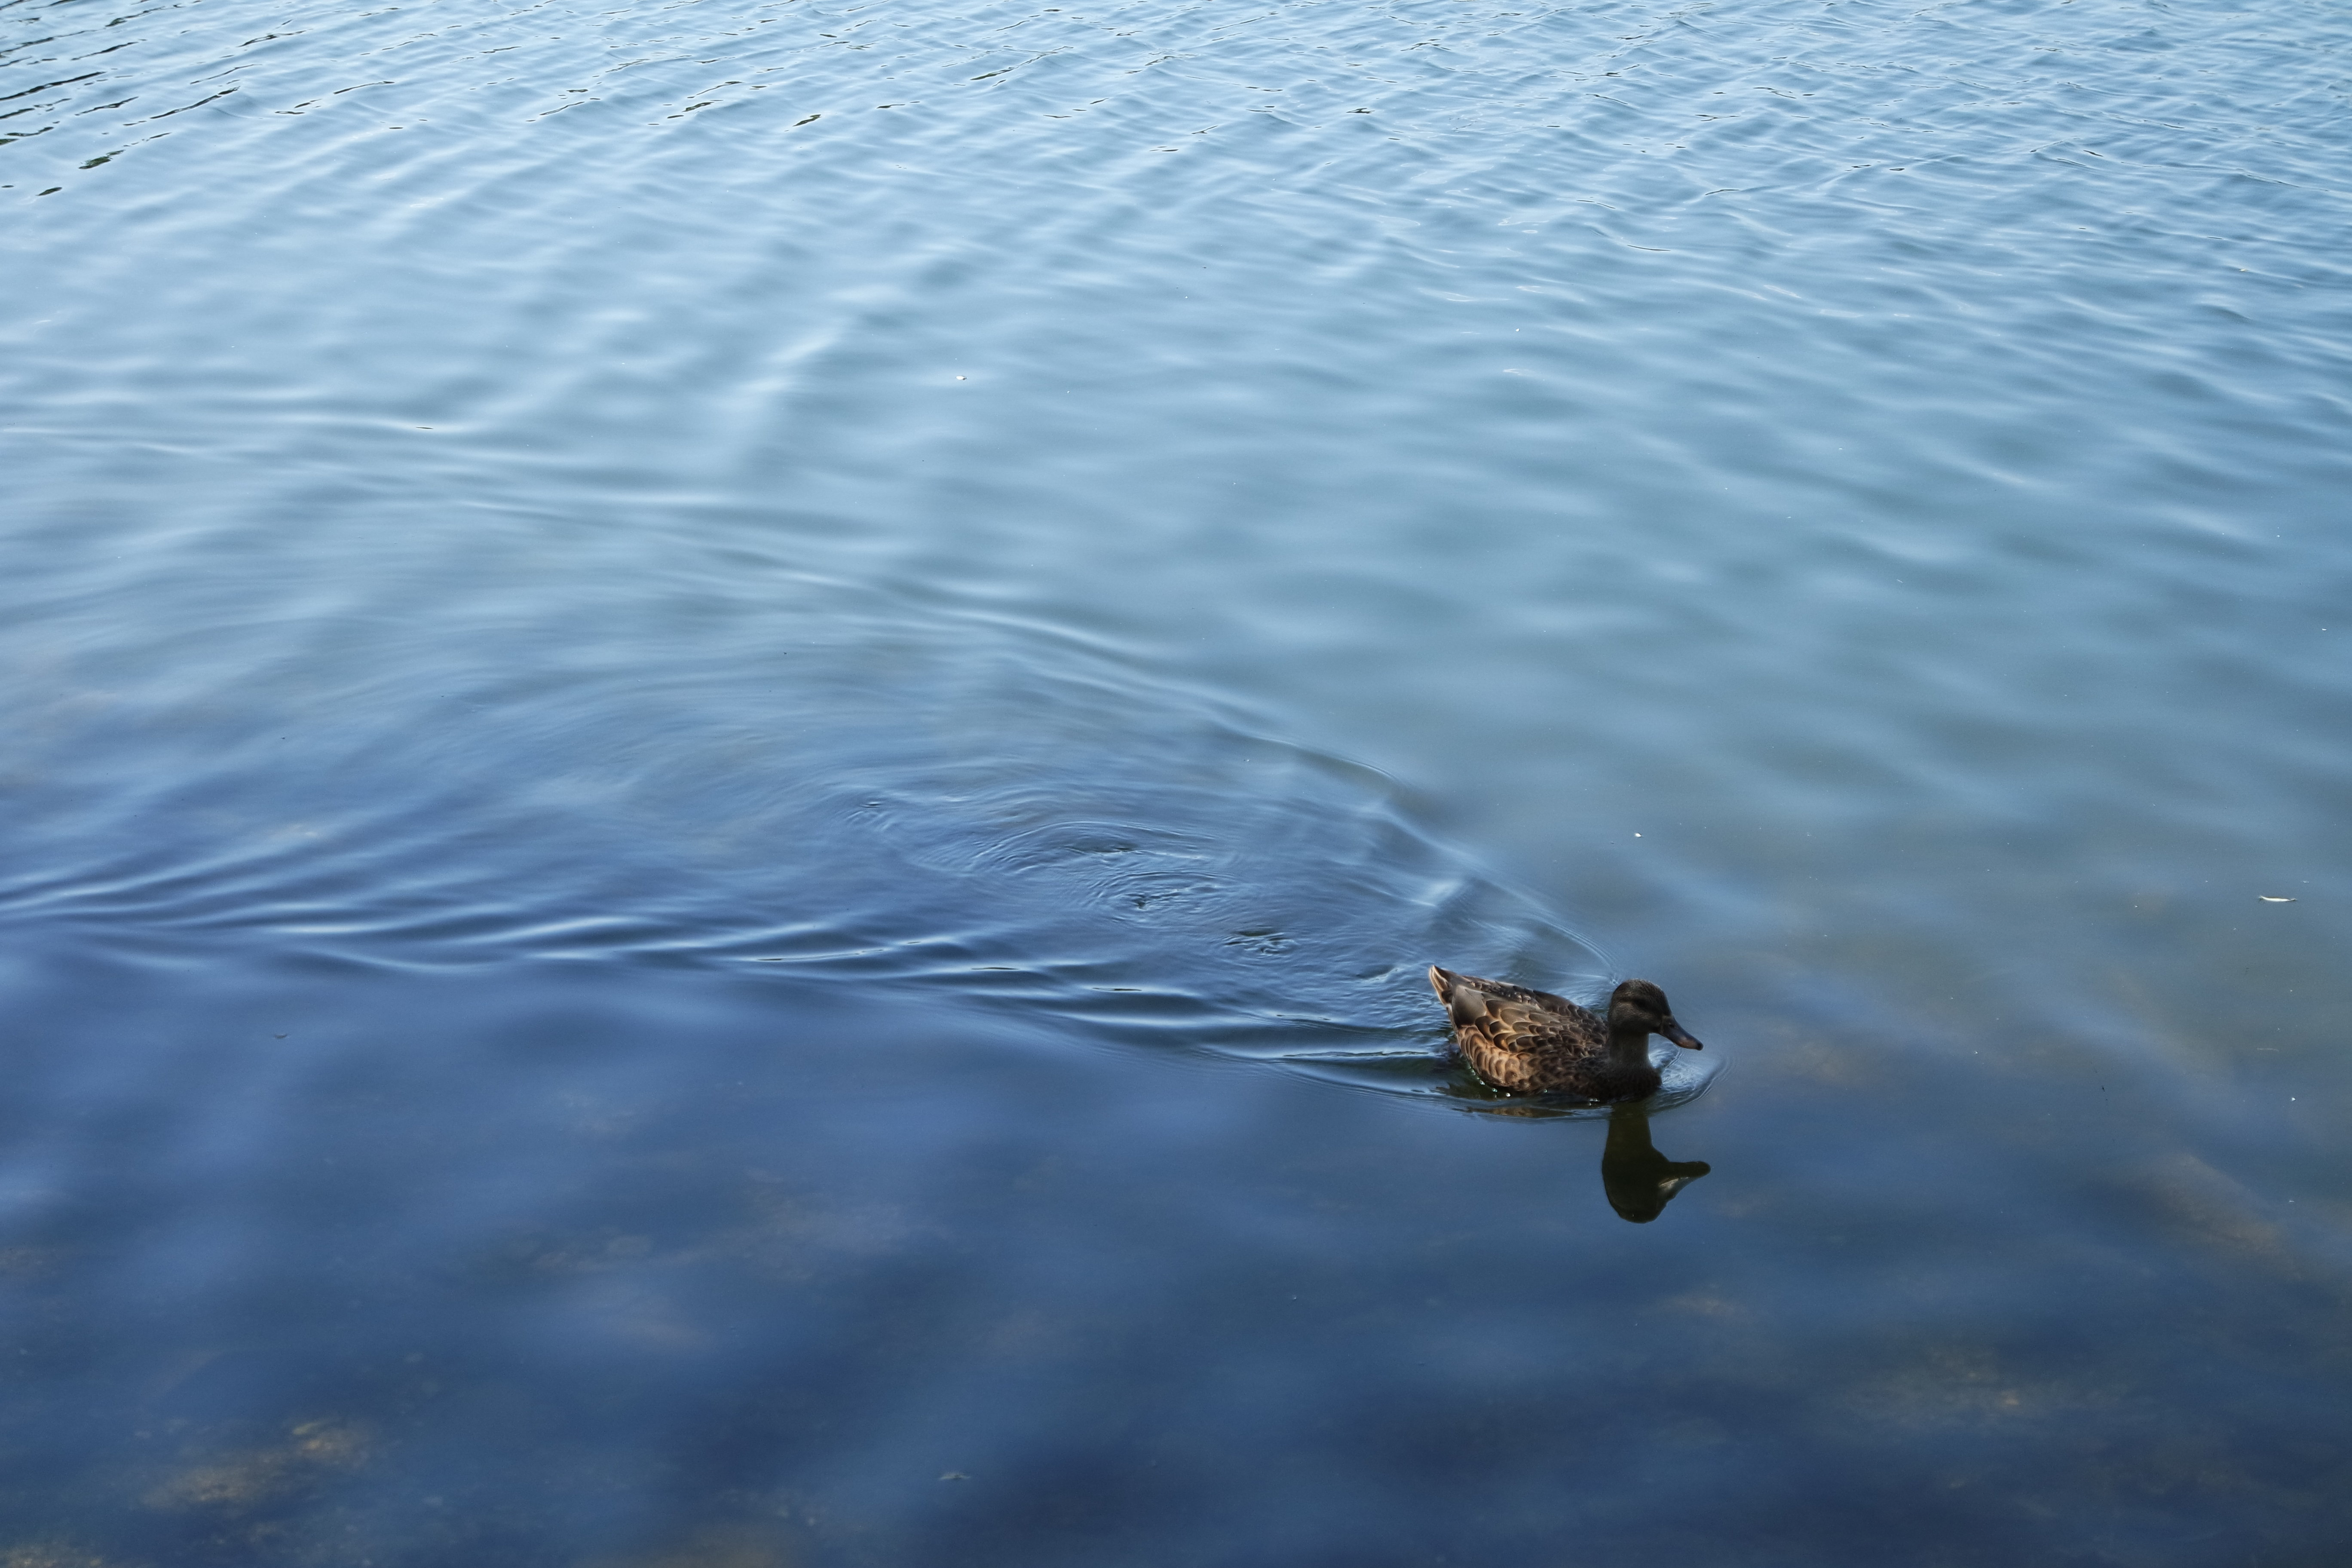 A sample photo of a duck shot by the Samsung NX3000.